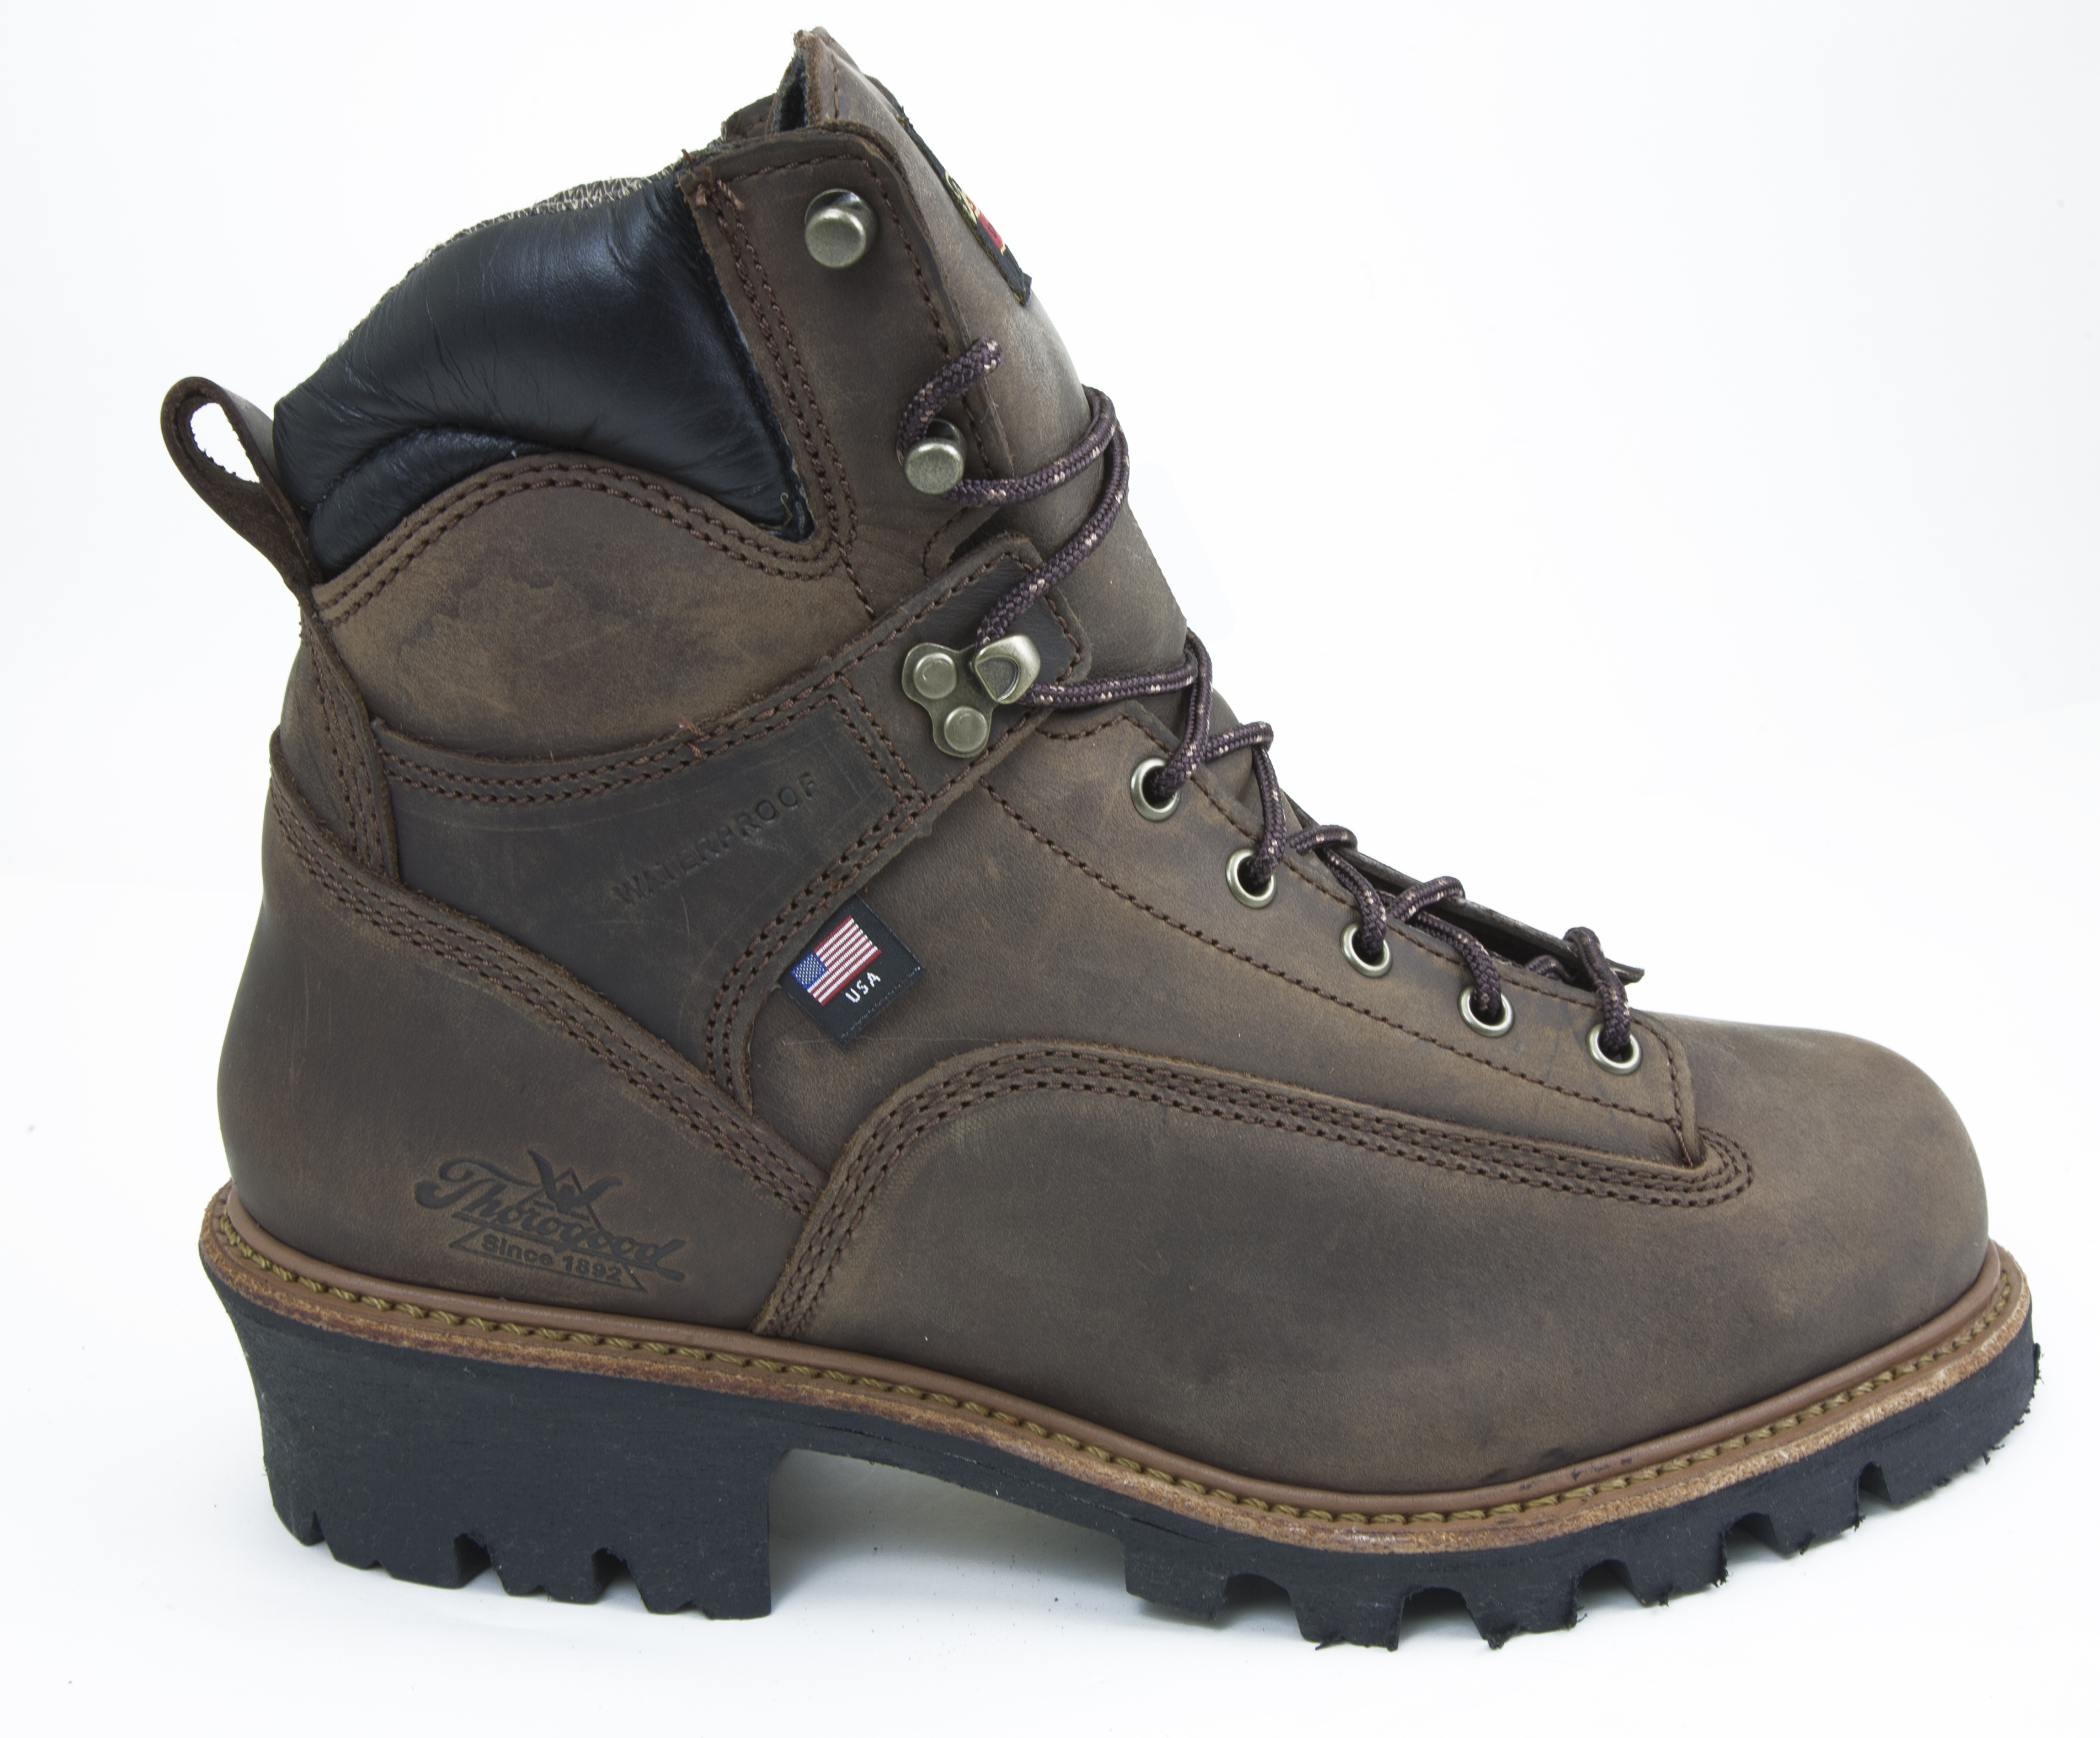 e67e1af5ec7 THOROGOOD BROWN LEATHER Steel Toe Waterproof Work Logger Made in USA  804-3566